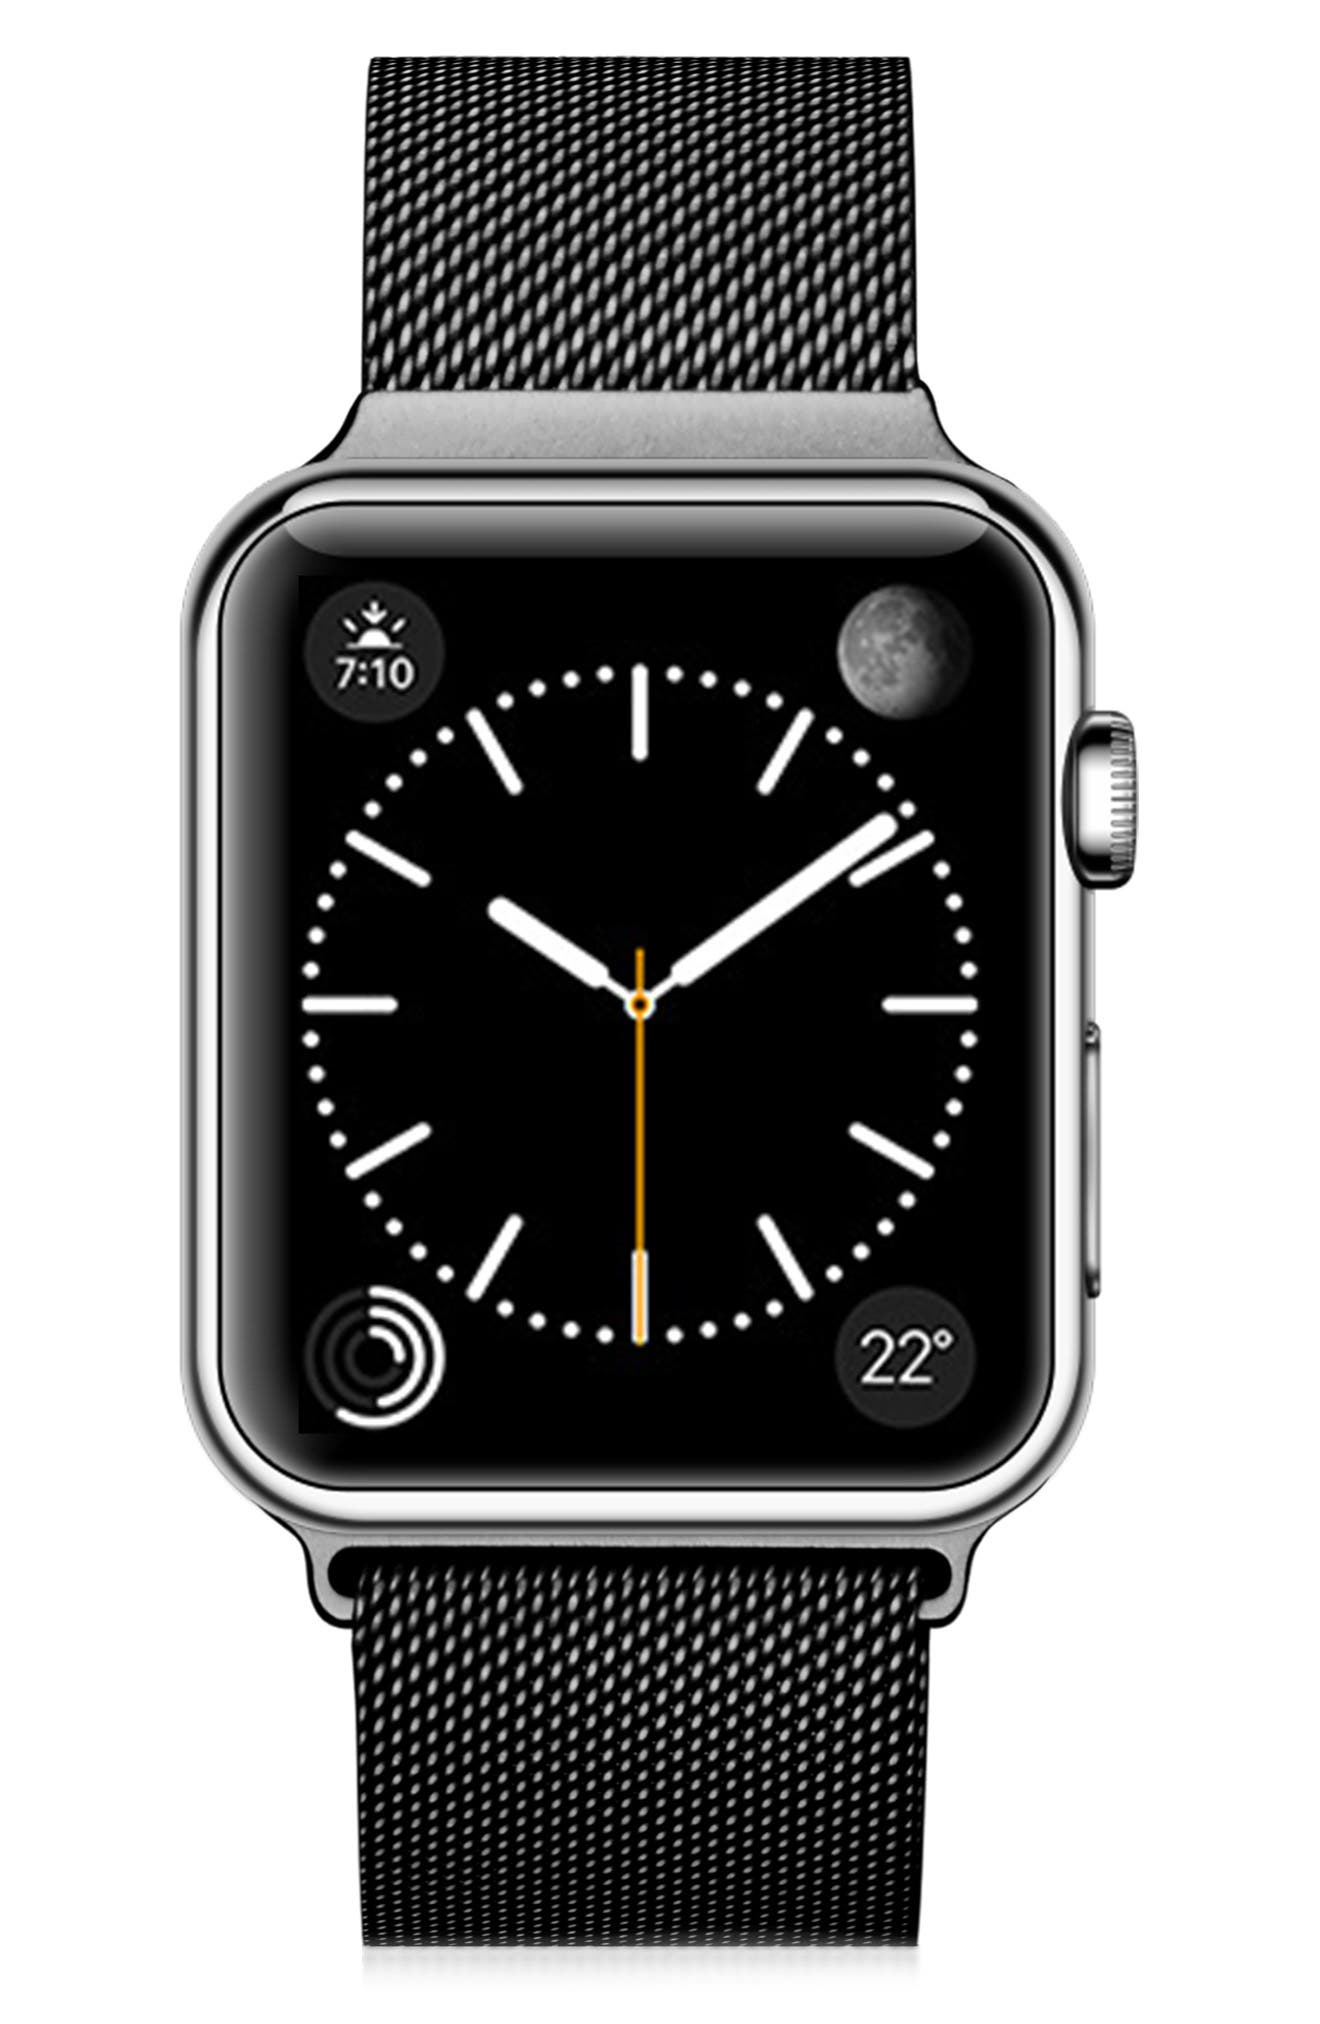 STAINLESS STEEL MESH APPLE WATCH STRAP